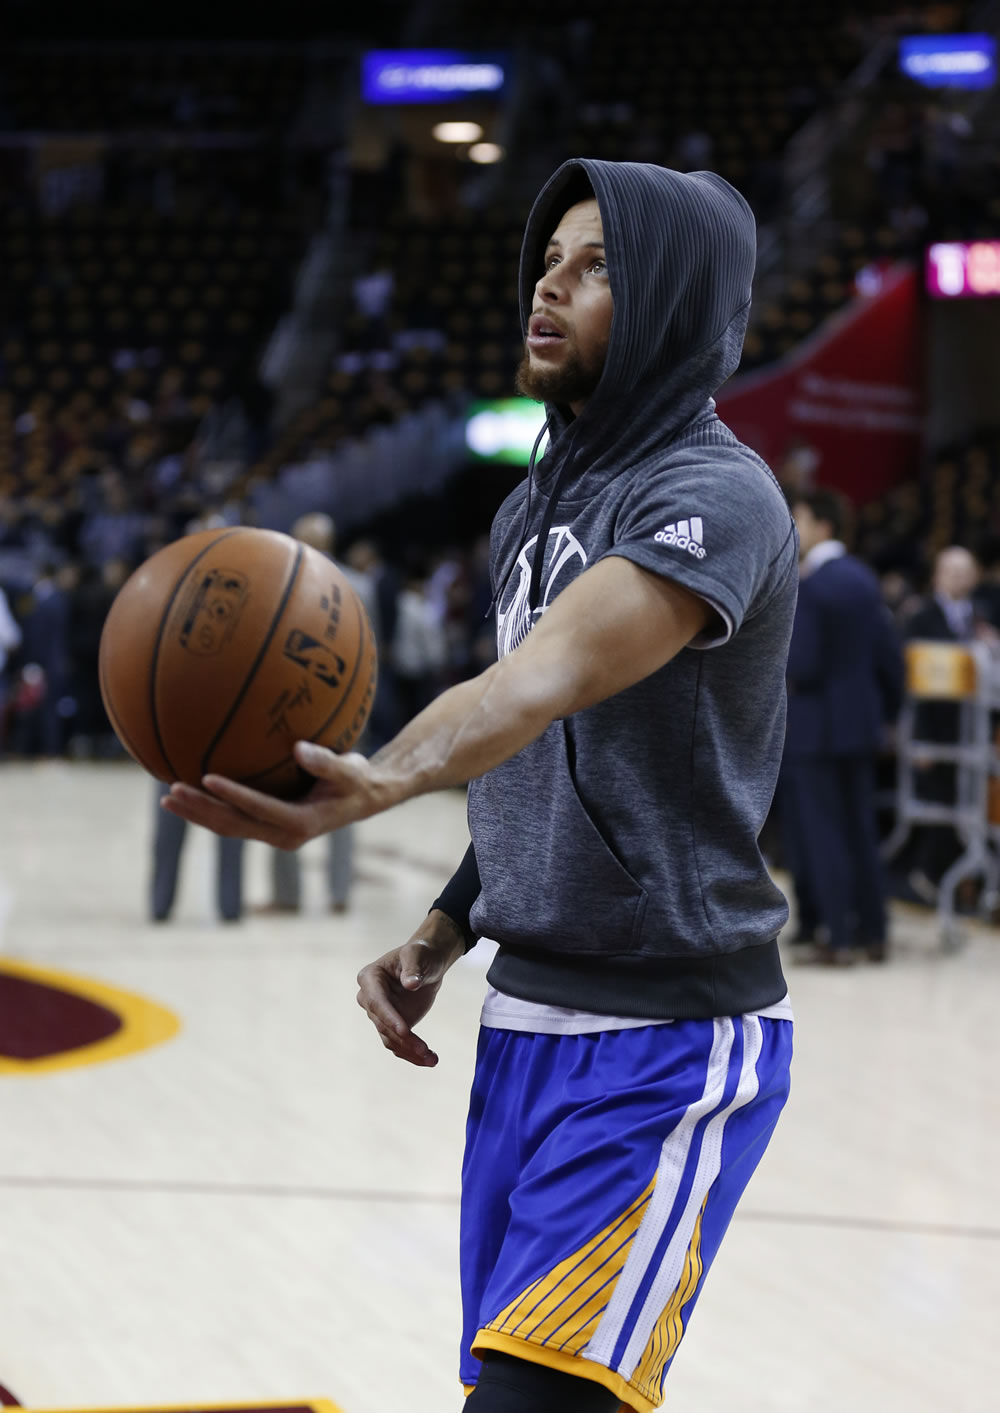 """<div class=""""meta image-caption""""><div class=""""origin-logo origin-image none""""><span>none</span></div><span class=""""caption-text"""">Stephen Curry warms up ahead of the NBA Finals in Cleveland, Ohio on Wednesday, June 7, 2017. (KGO-TV)</span></div>"""